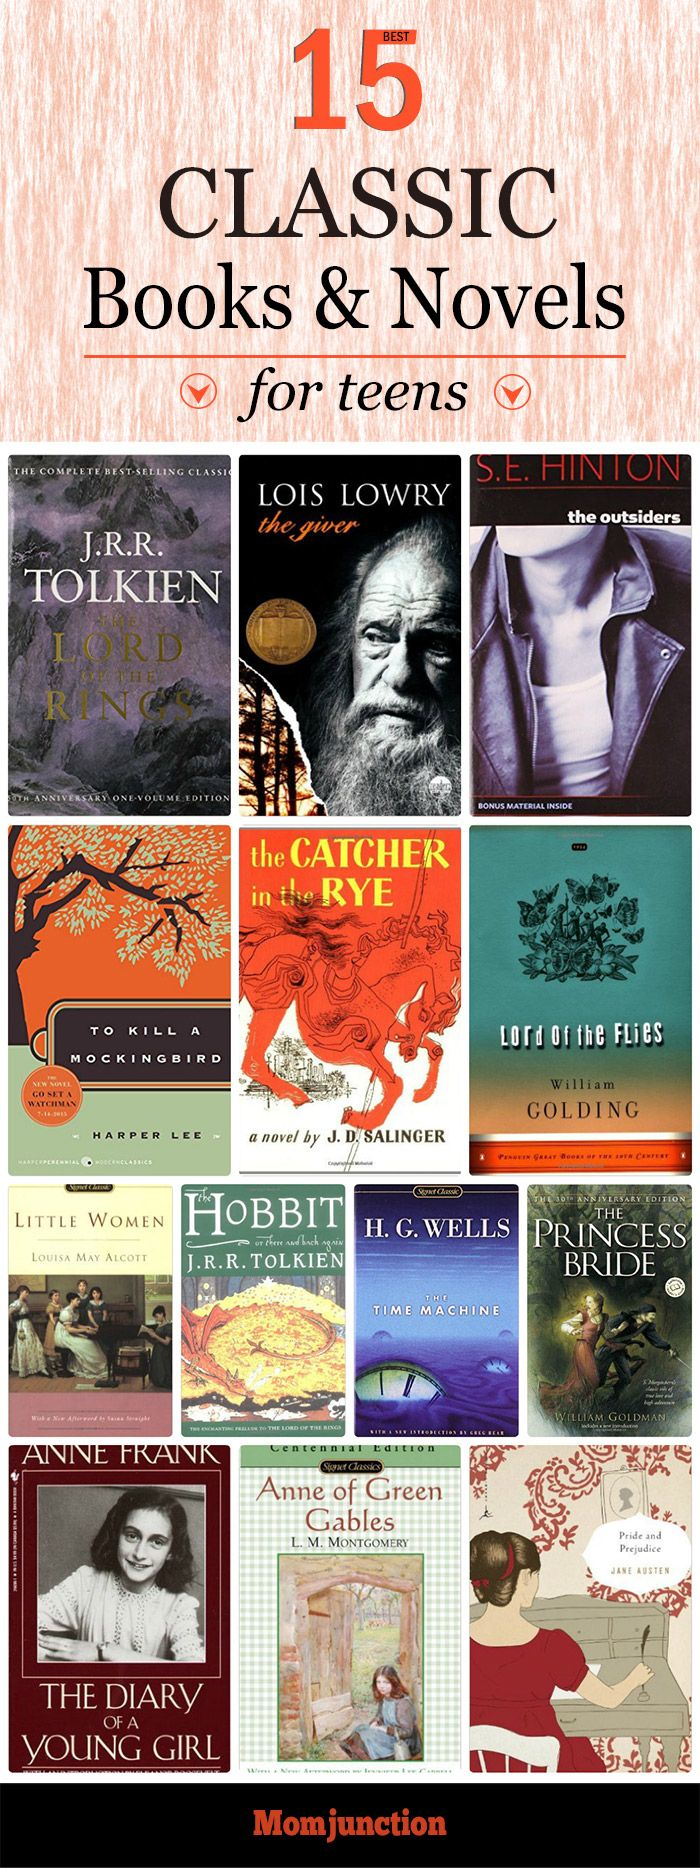 15 Best Classic Books For Teens To Read Books For Teens Best Classic Books Books